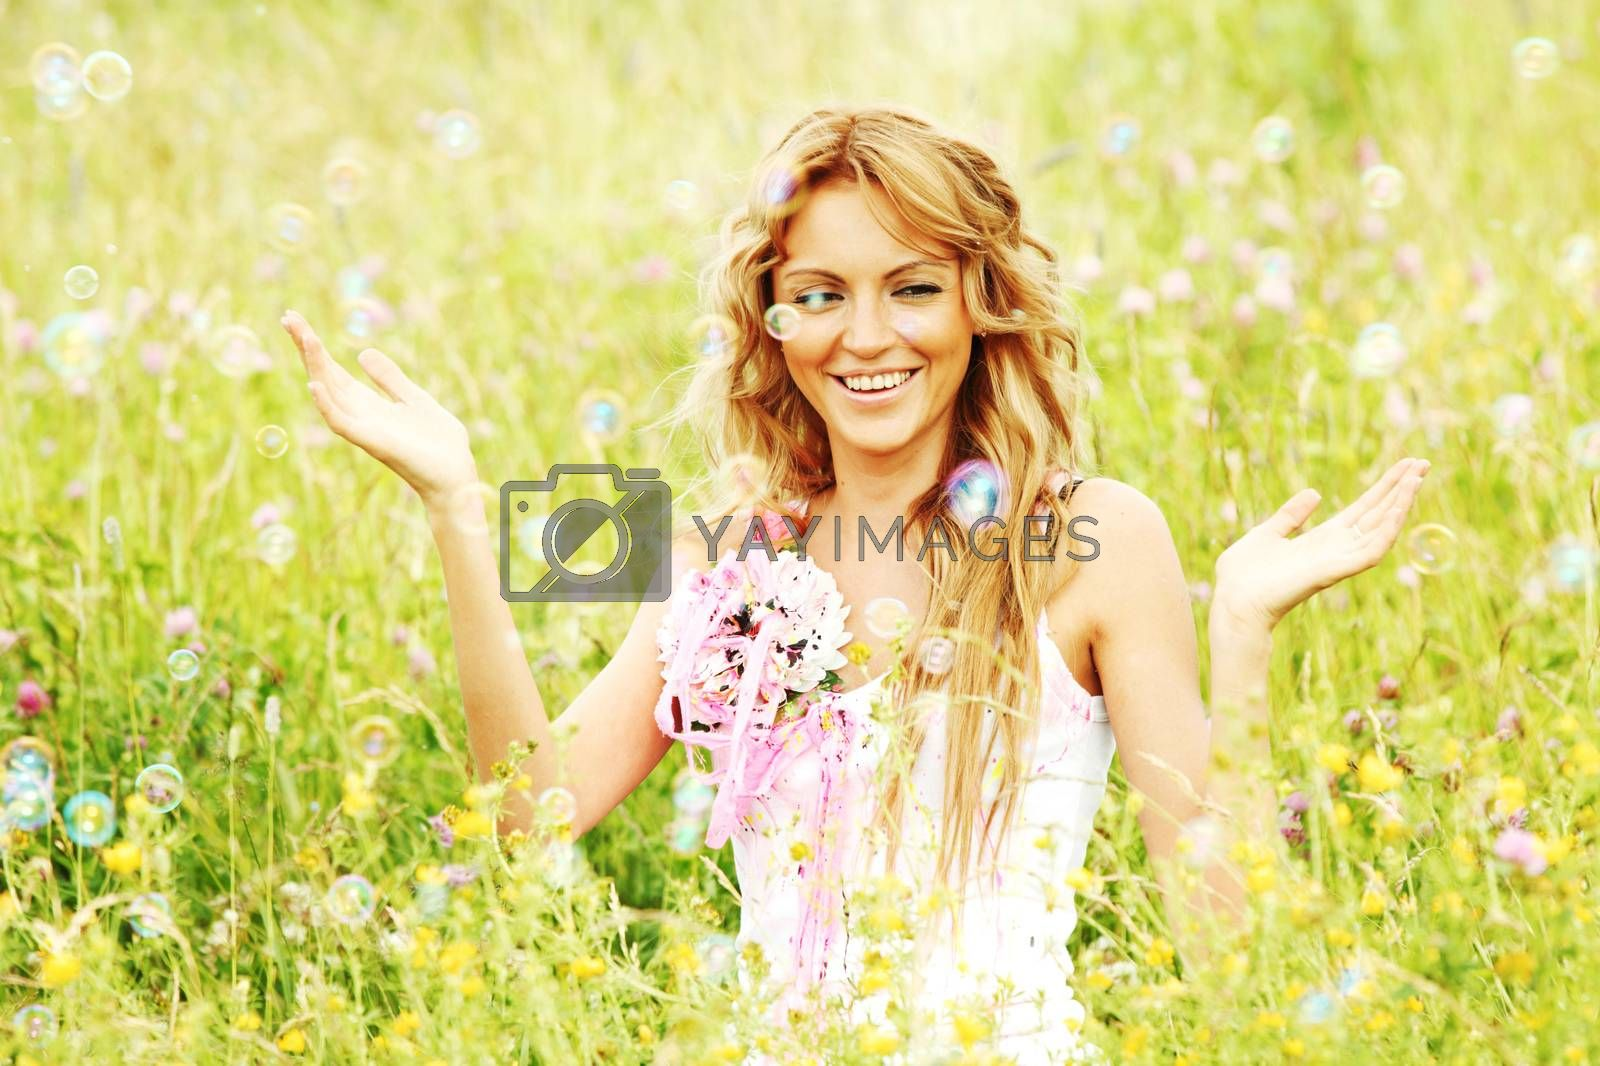 Blonde girl starts soap bubbles and smiling in a green spring field